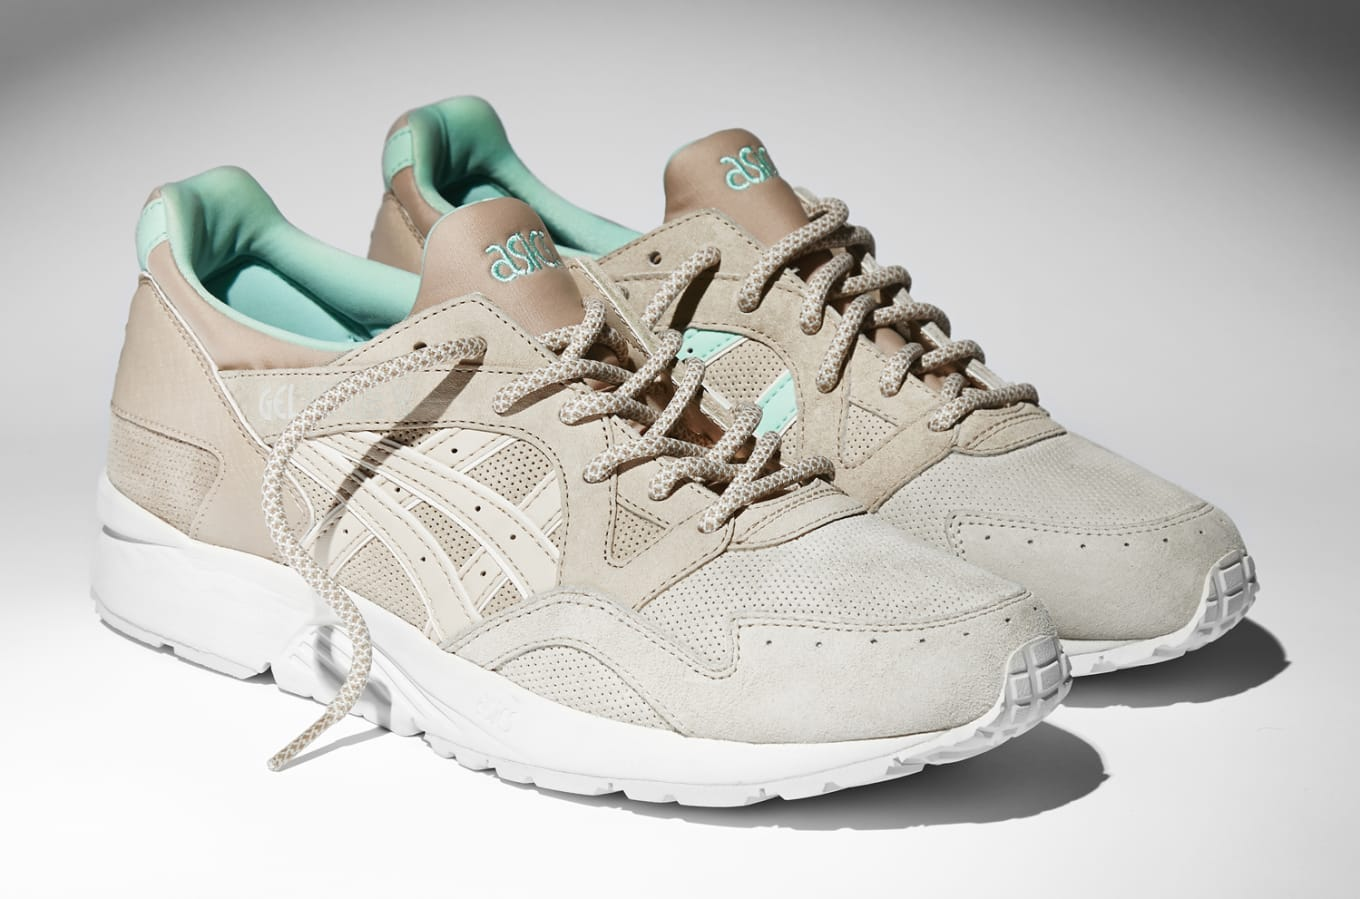 a5926b0ea2b4 Sneaker Store Collaborates With Asics for 20th Anniversary Celebration.  Offspring redesigns the Gel Lyte V.